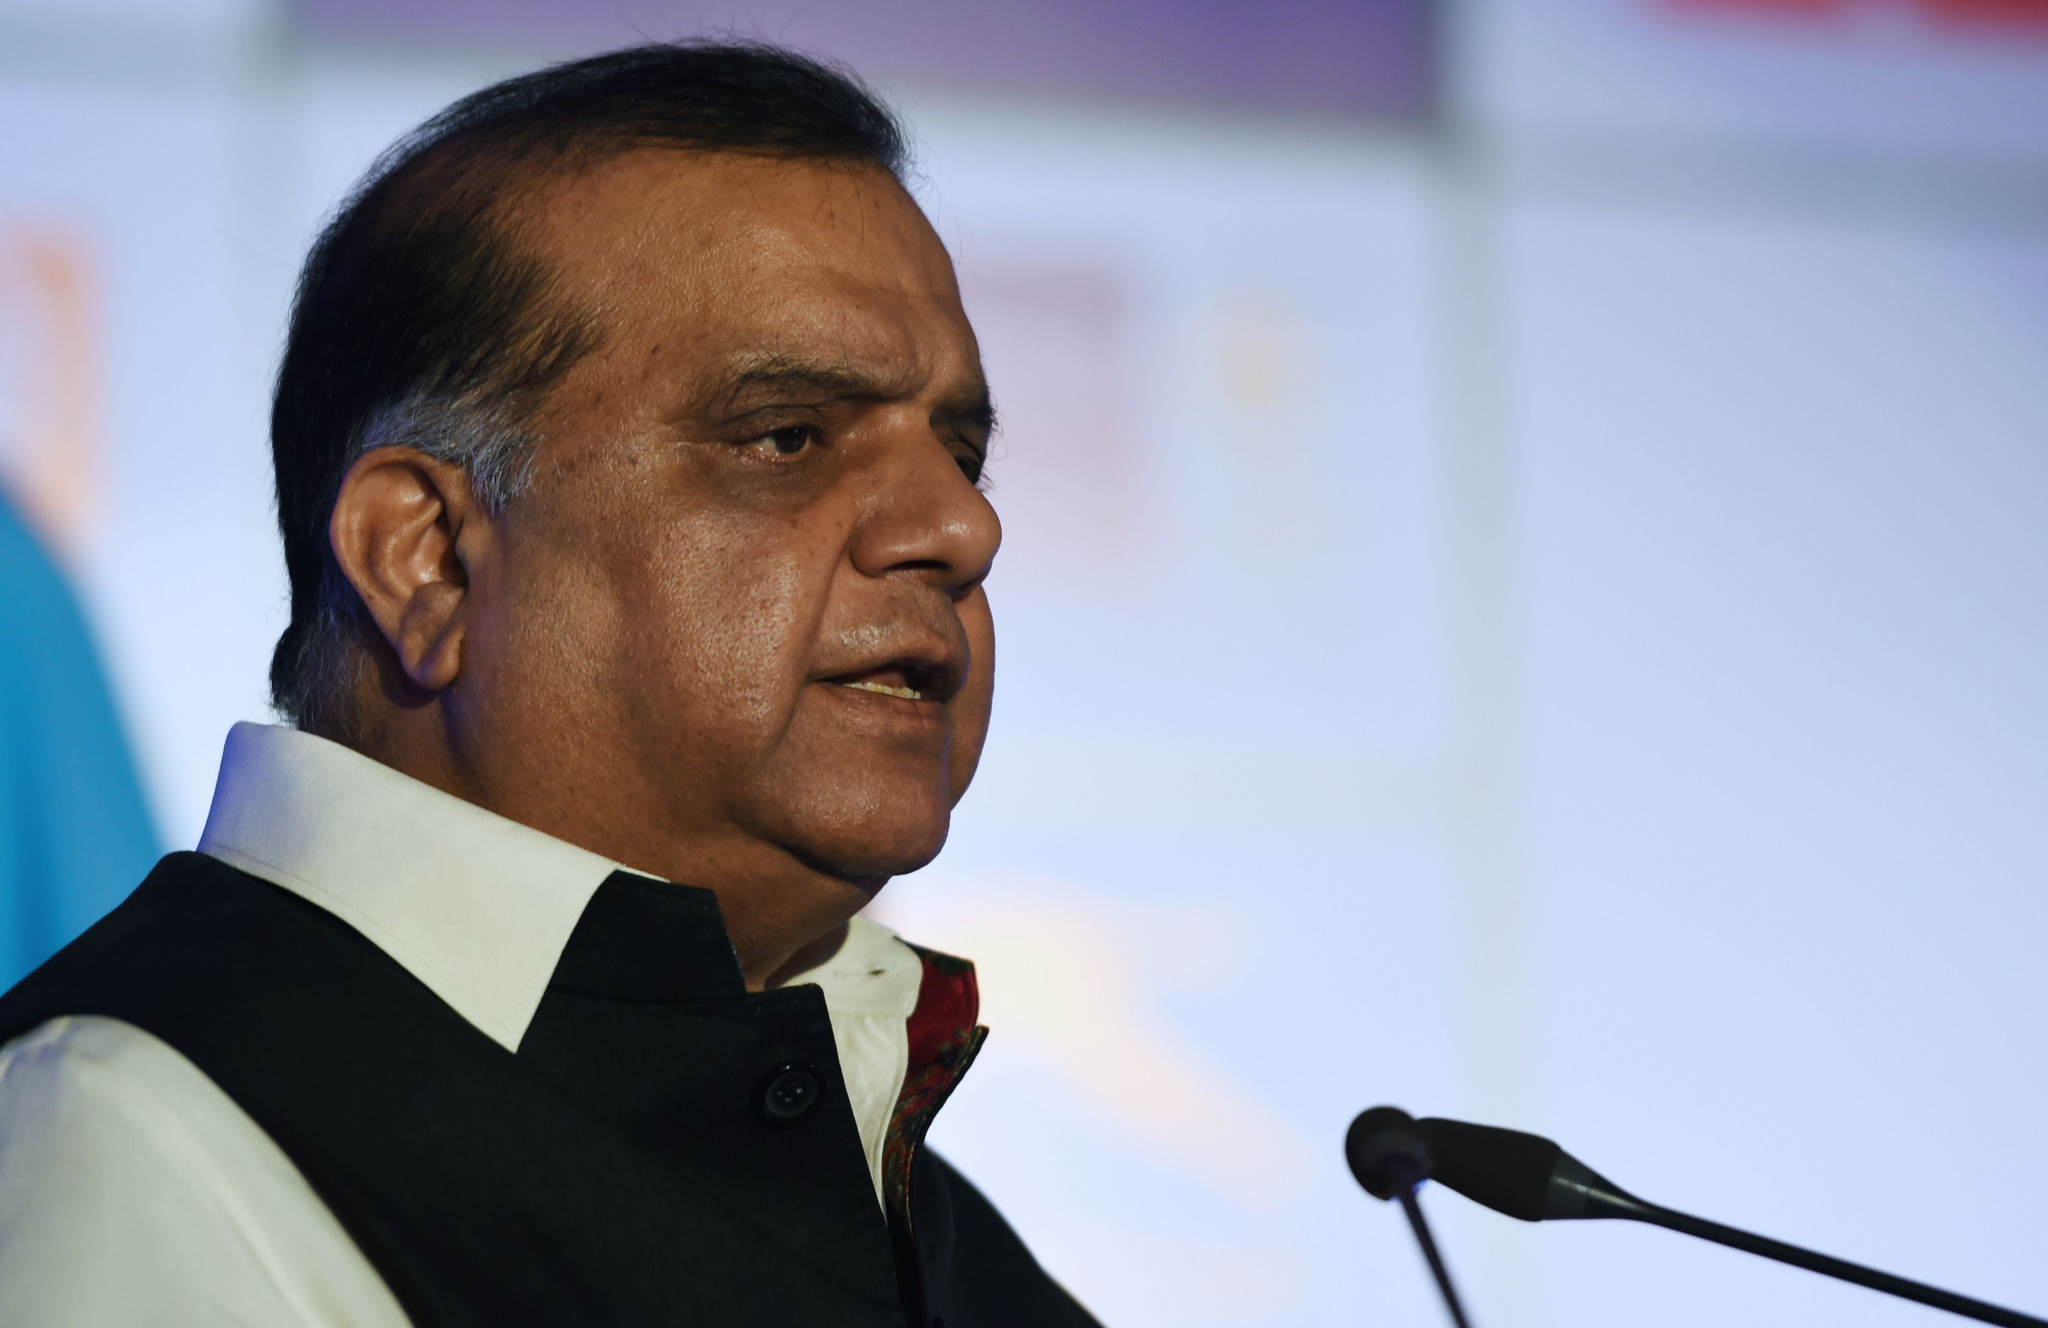 Narinder Batra has sparked controversy by claiming the Commonwealth Games are a waste of time and money ©Getty Images